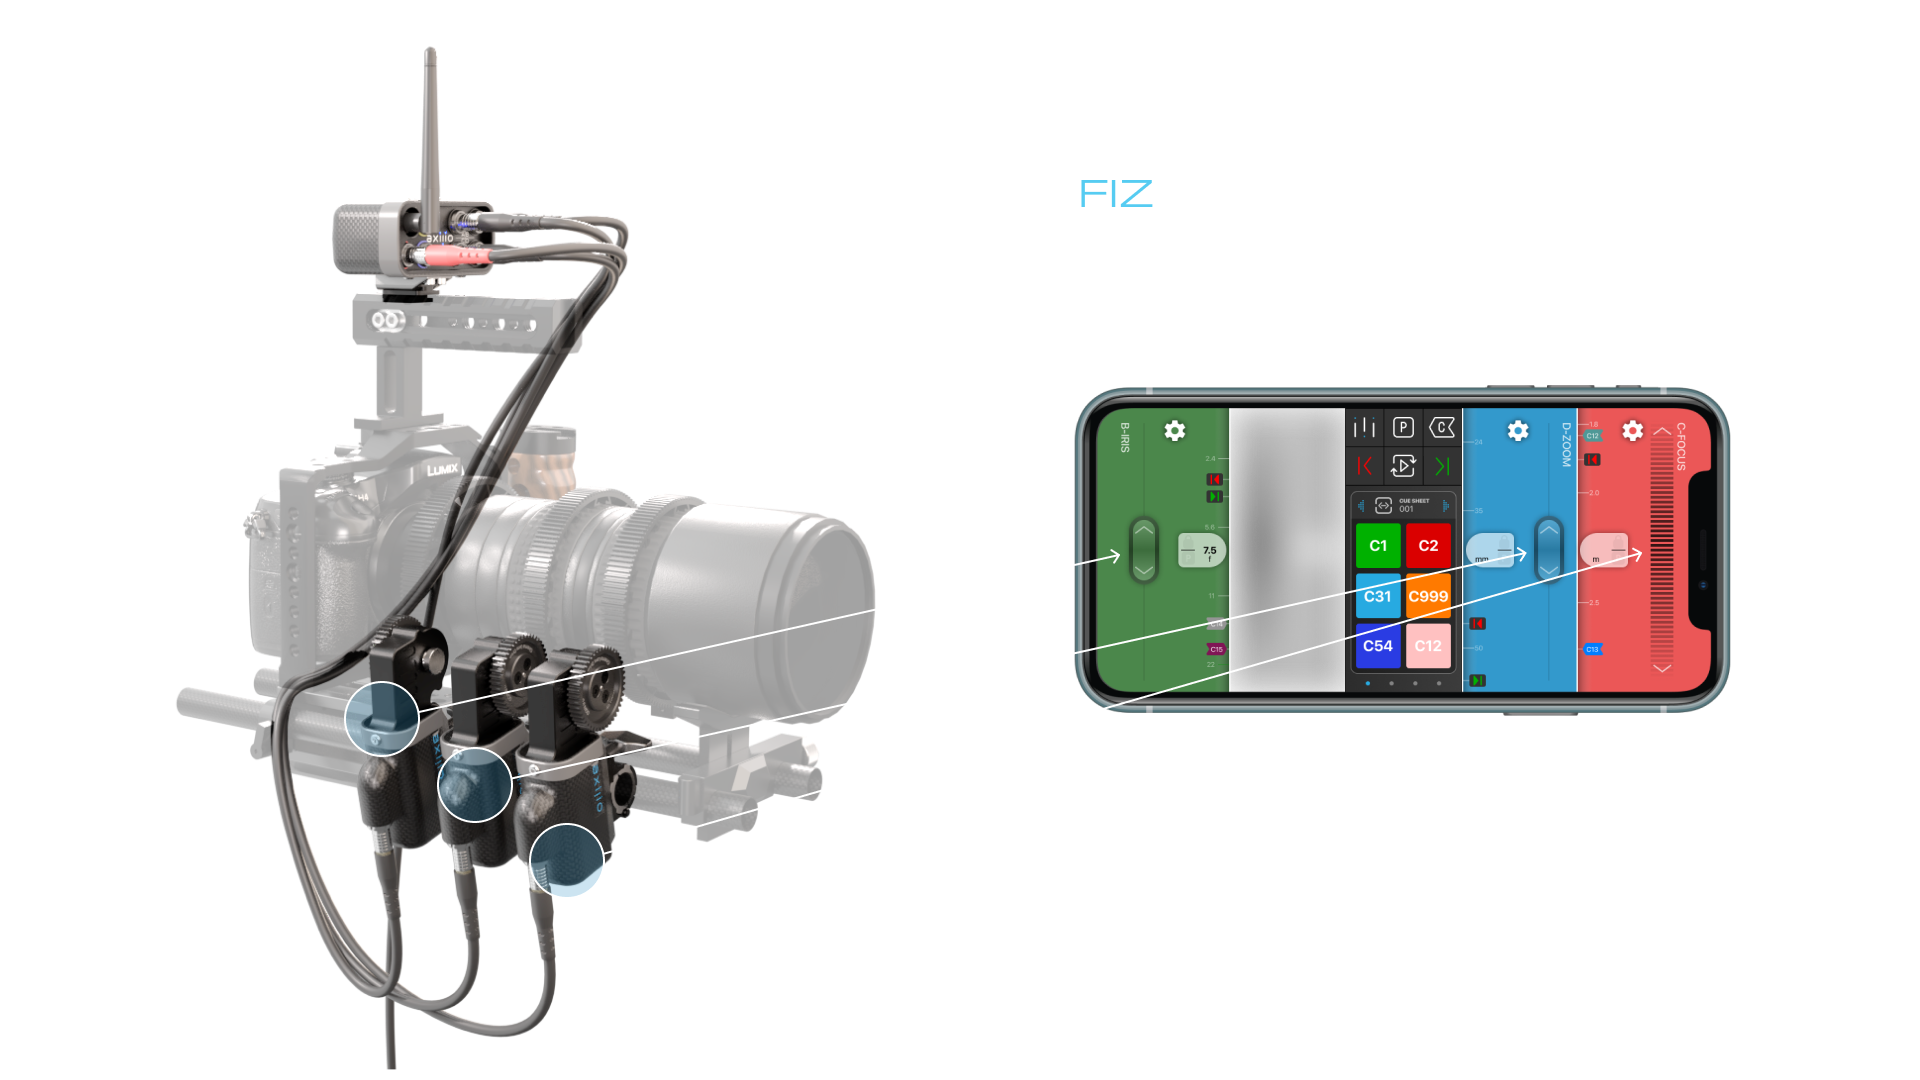 App based FIZ control that works. Create controllers that suit your workflow, then tweak them to work the way you want.